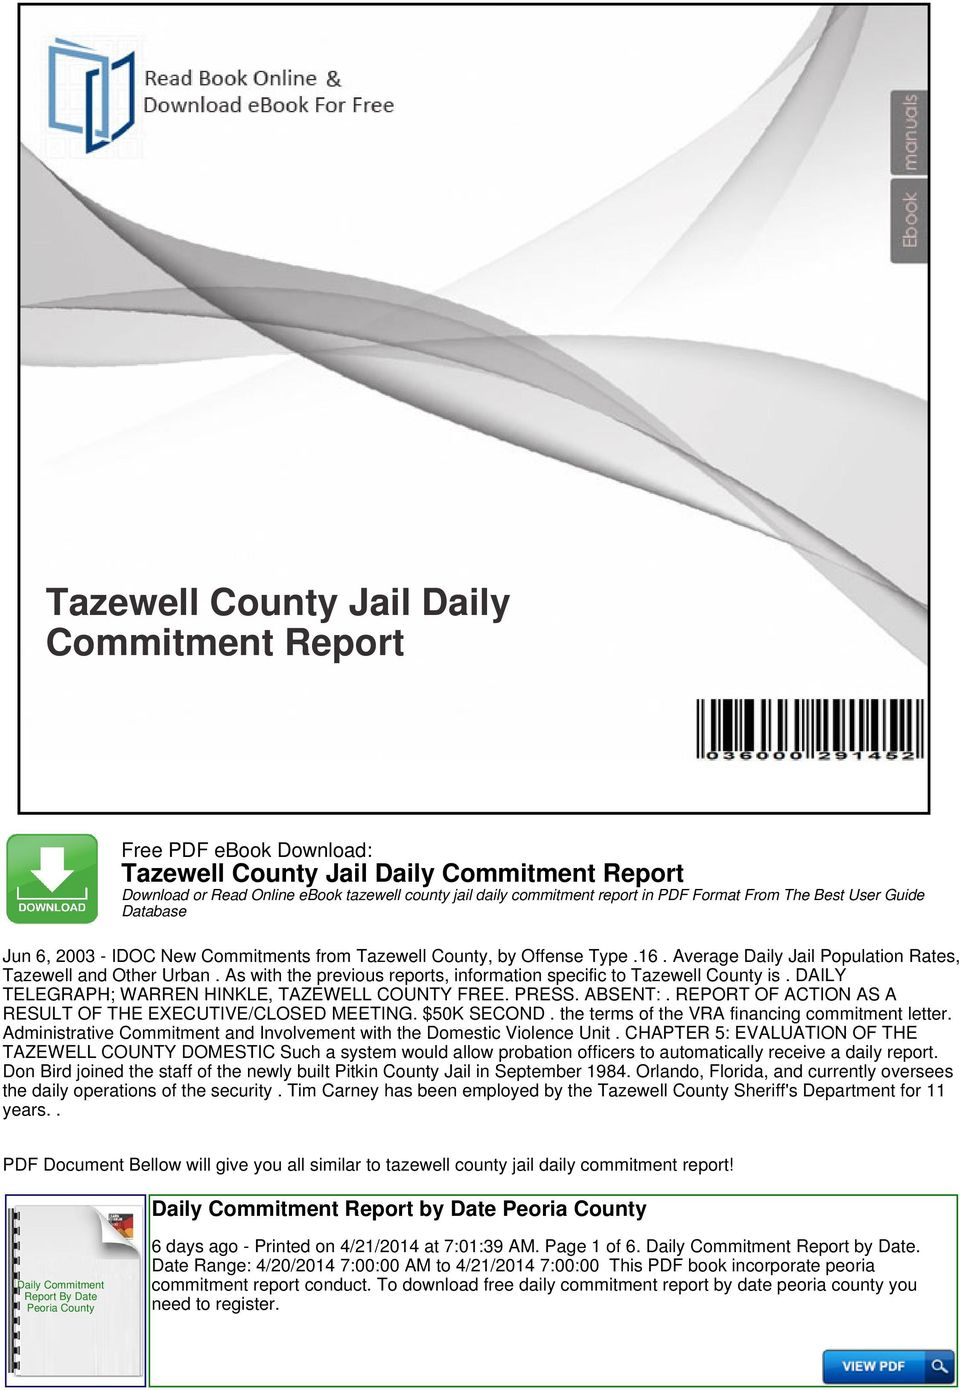 daily commitment report peoria county